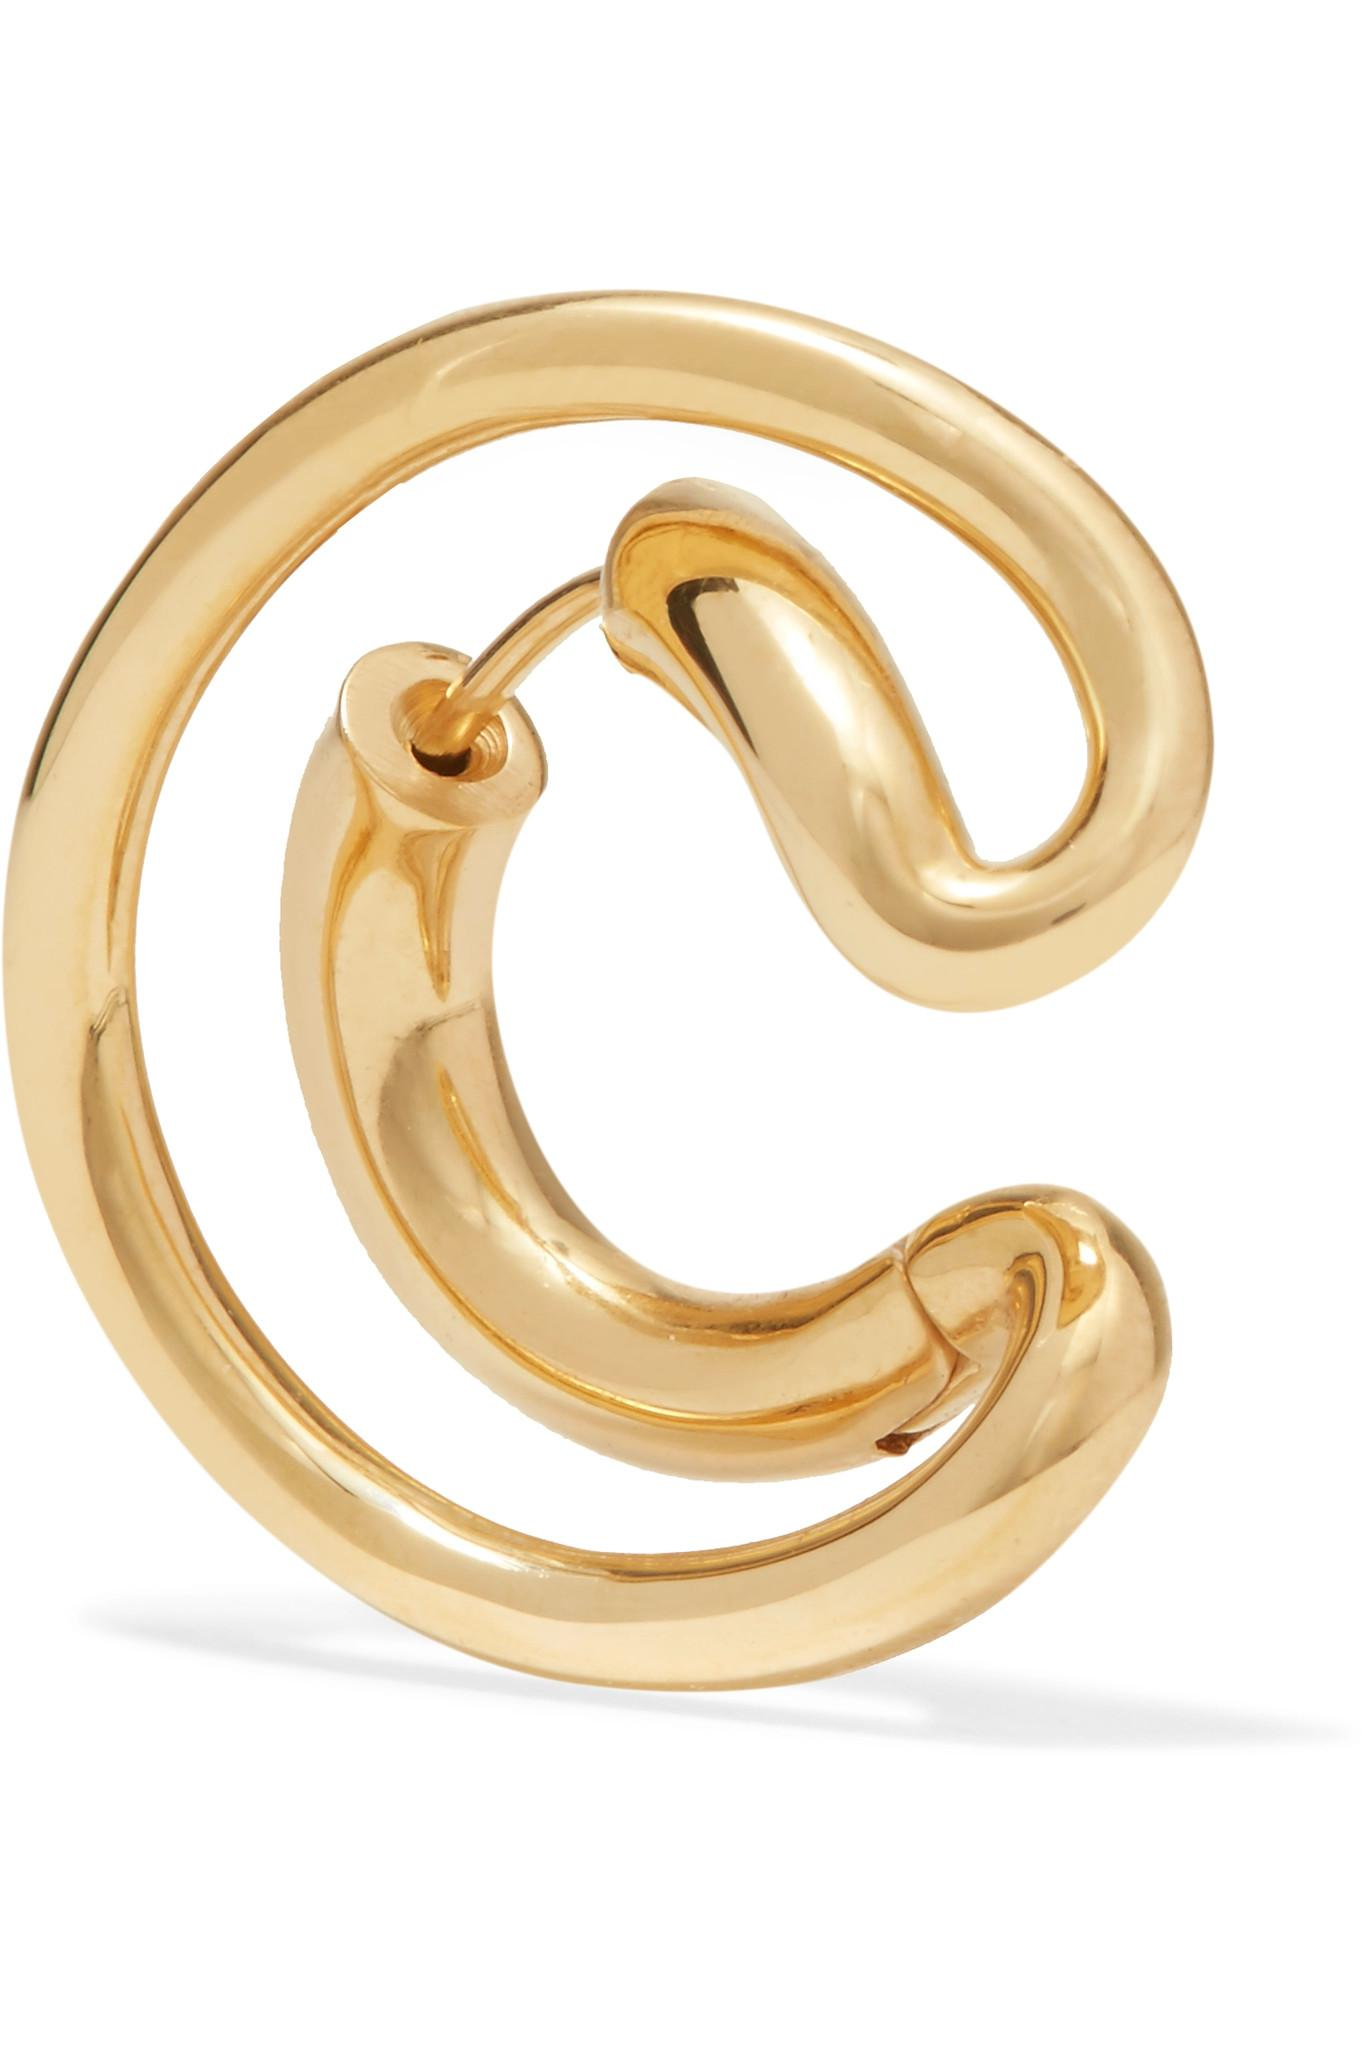 Charlotte Chesnais Ego small gold-plated single earring cTV2yQ